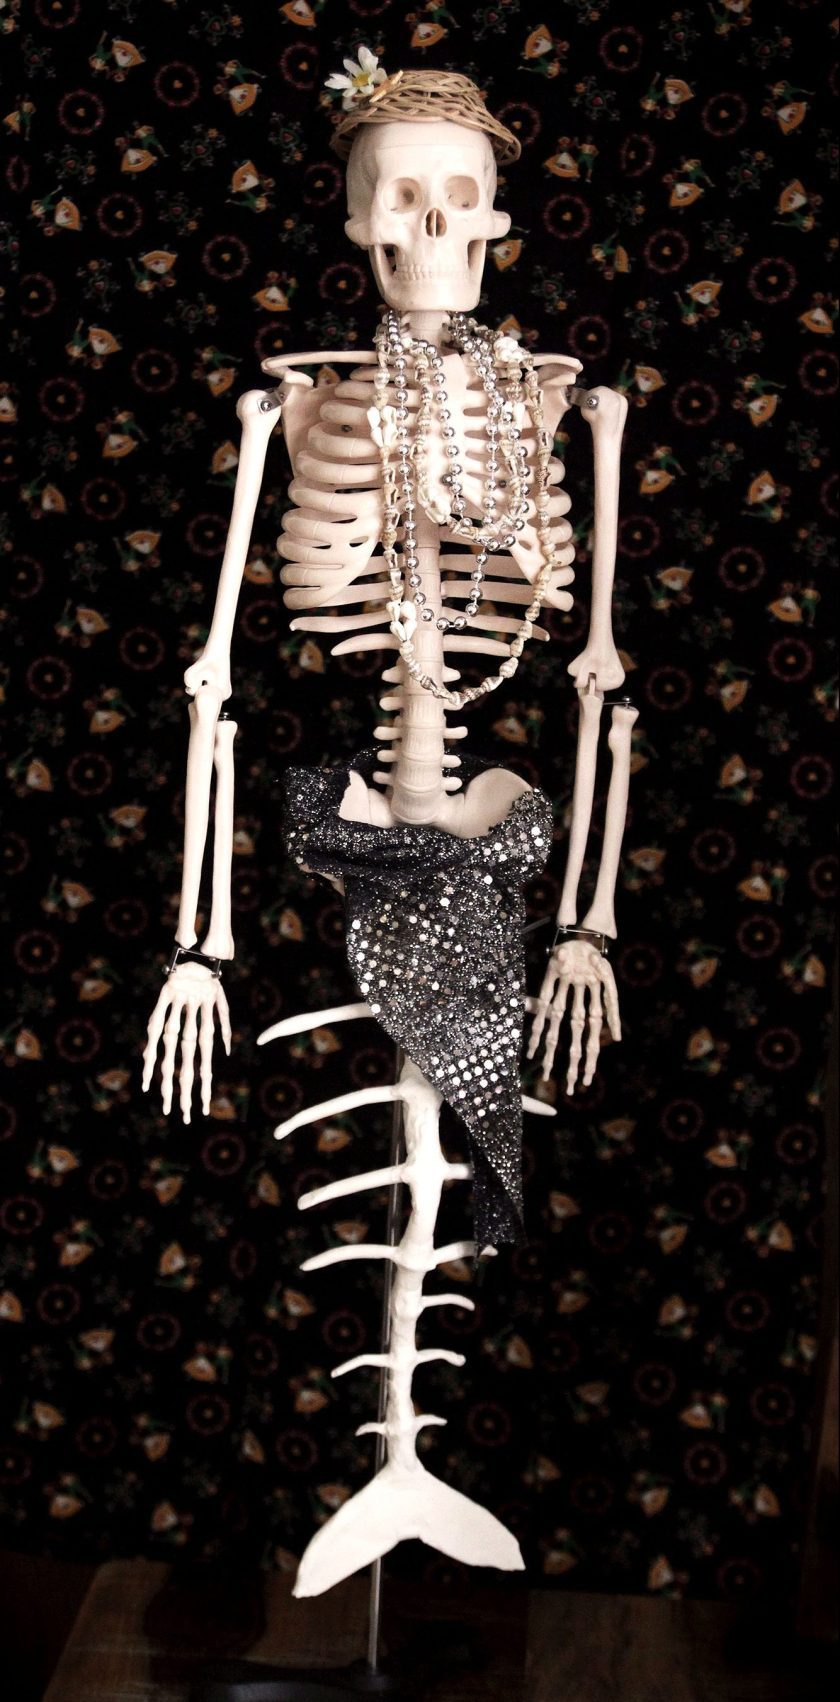 Science of Mermaids Birthday Party: Skeleton Makeover